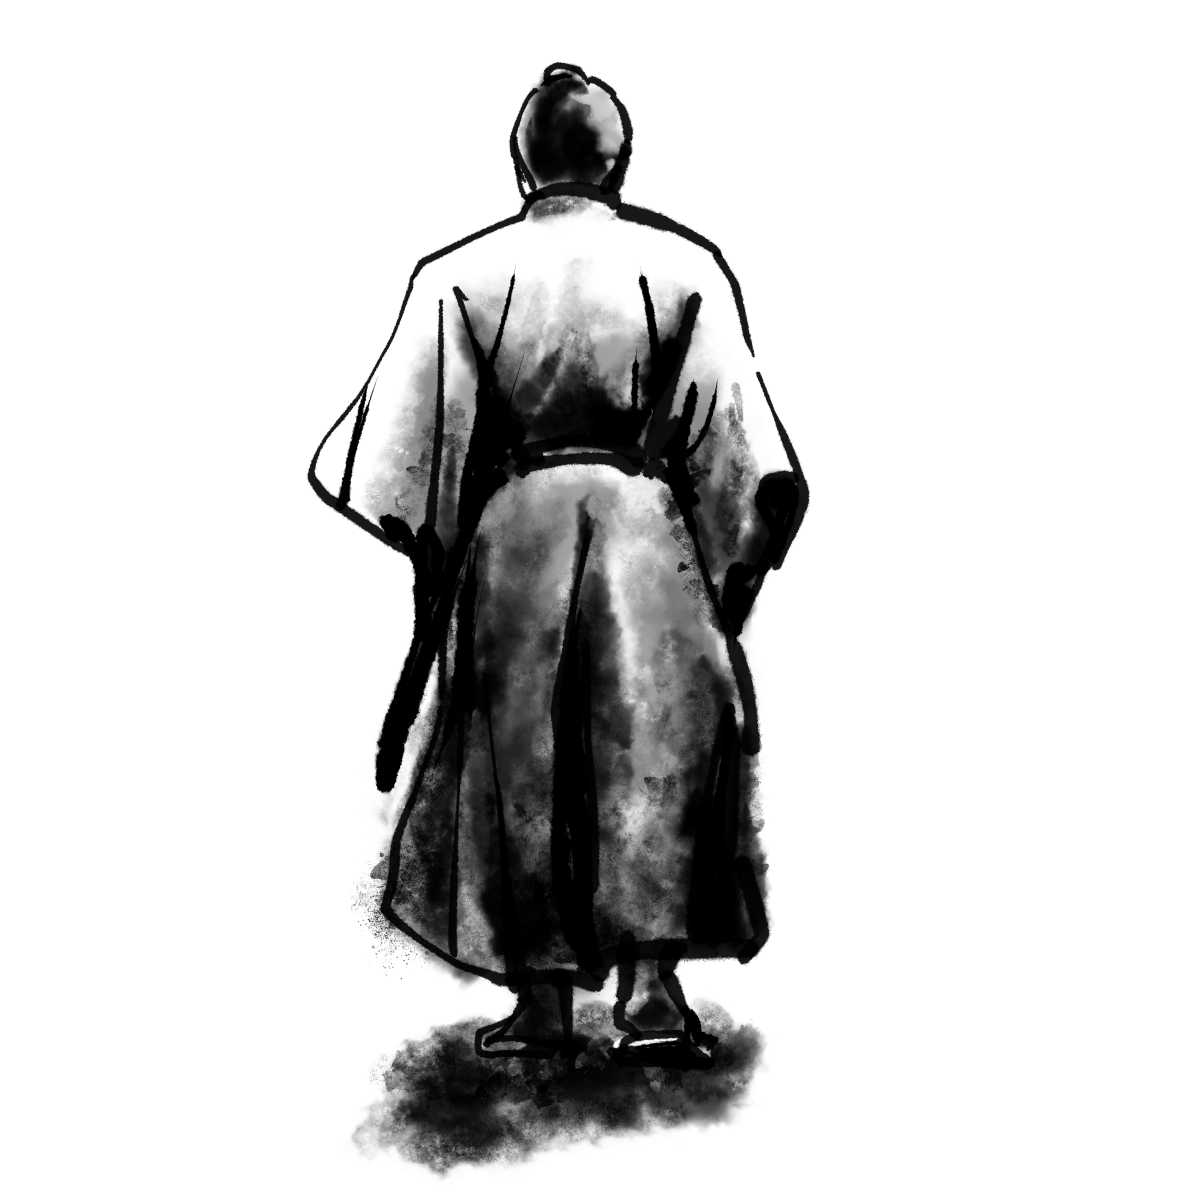 侍の背中のイラスト Back of samurai  Illustration